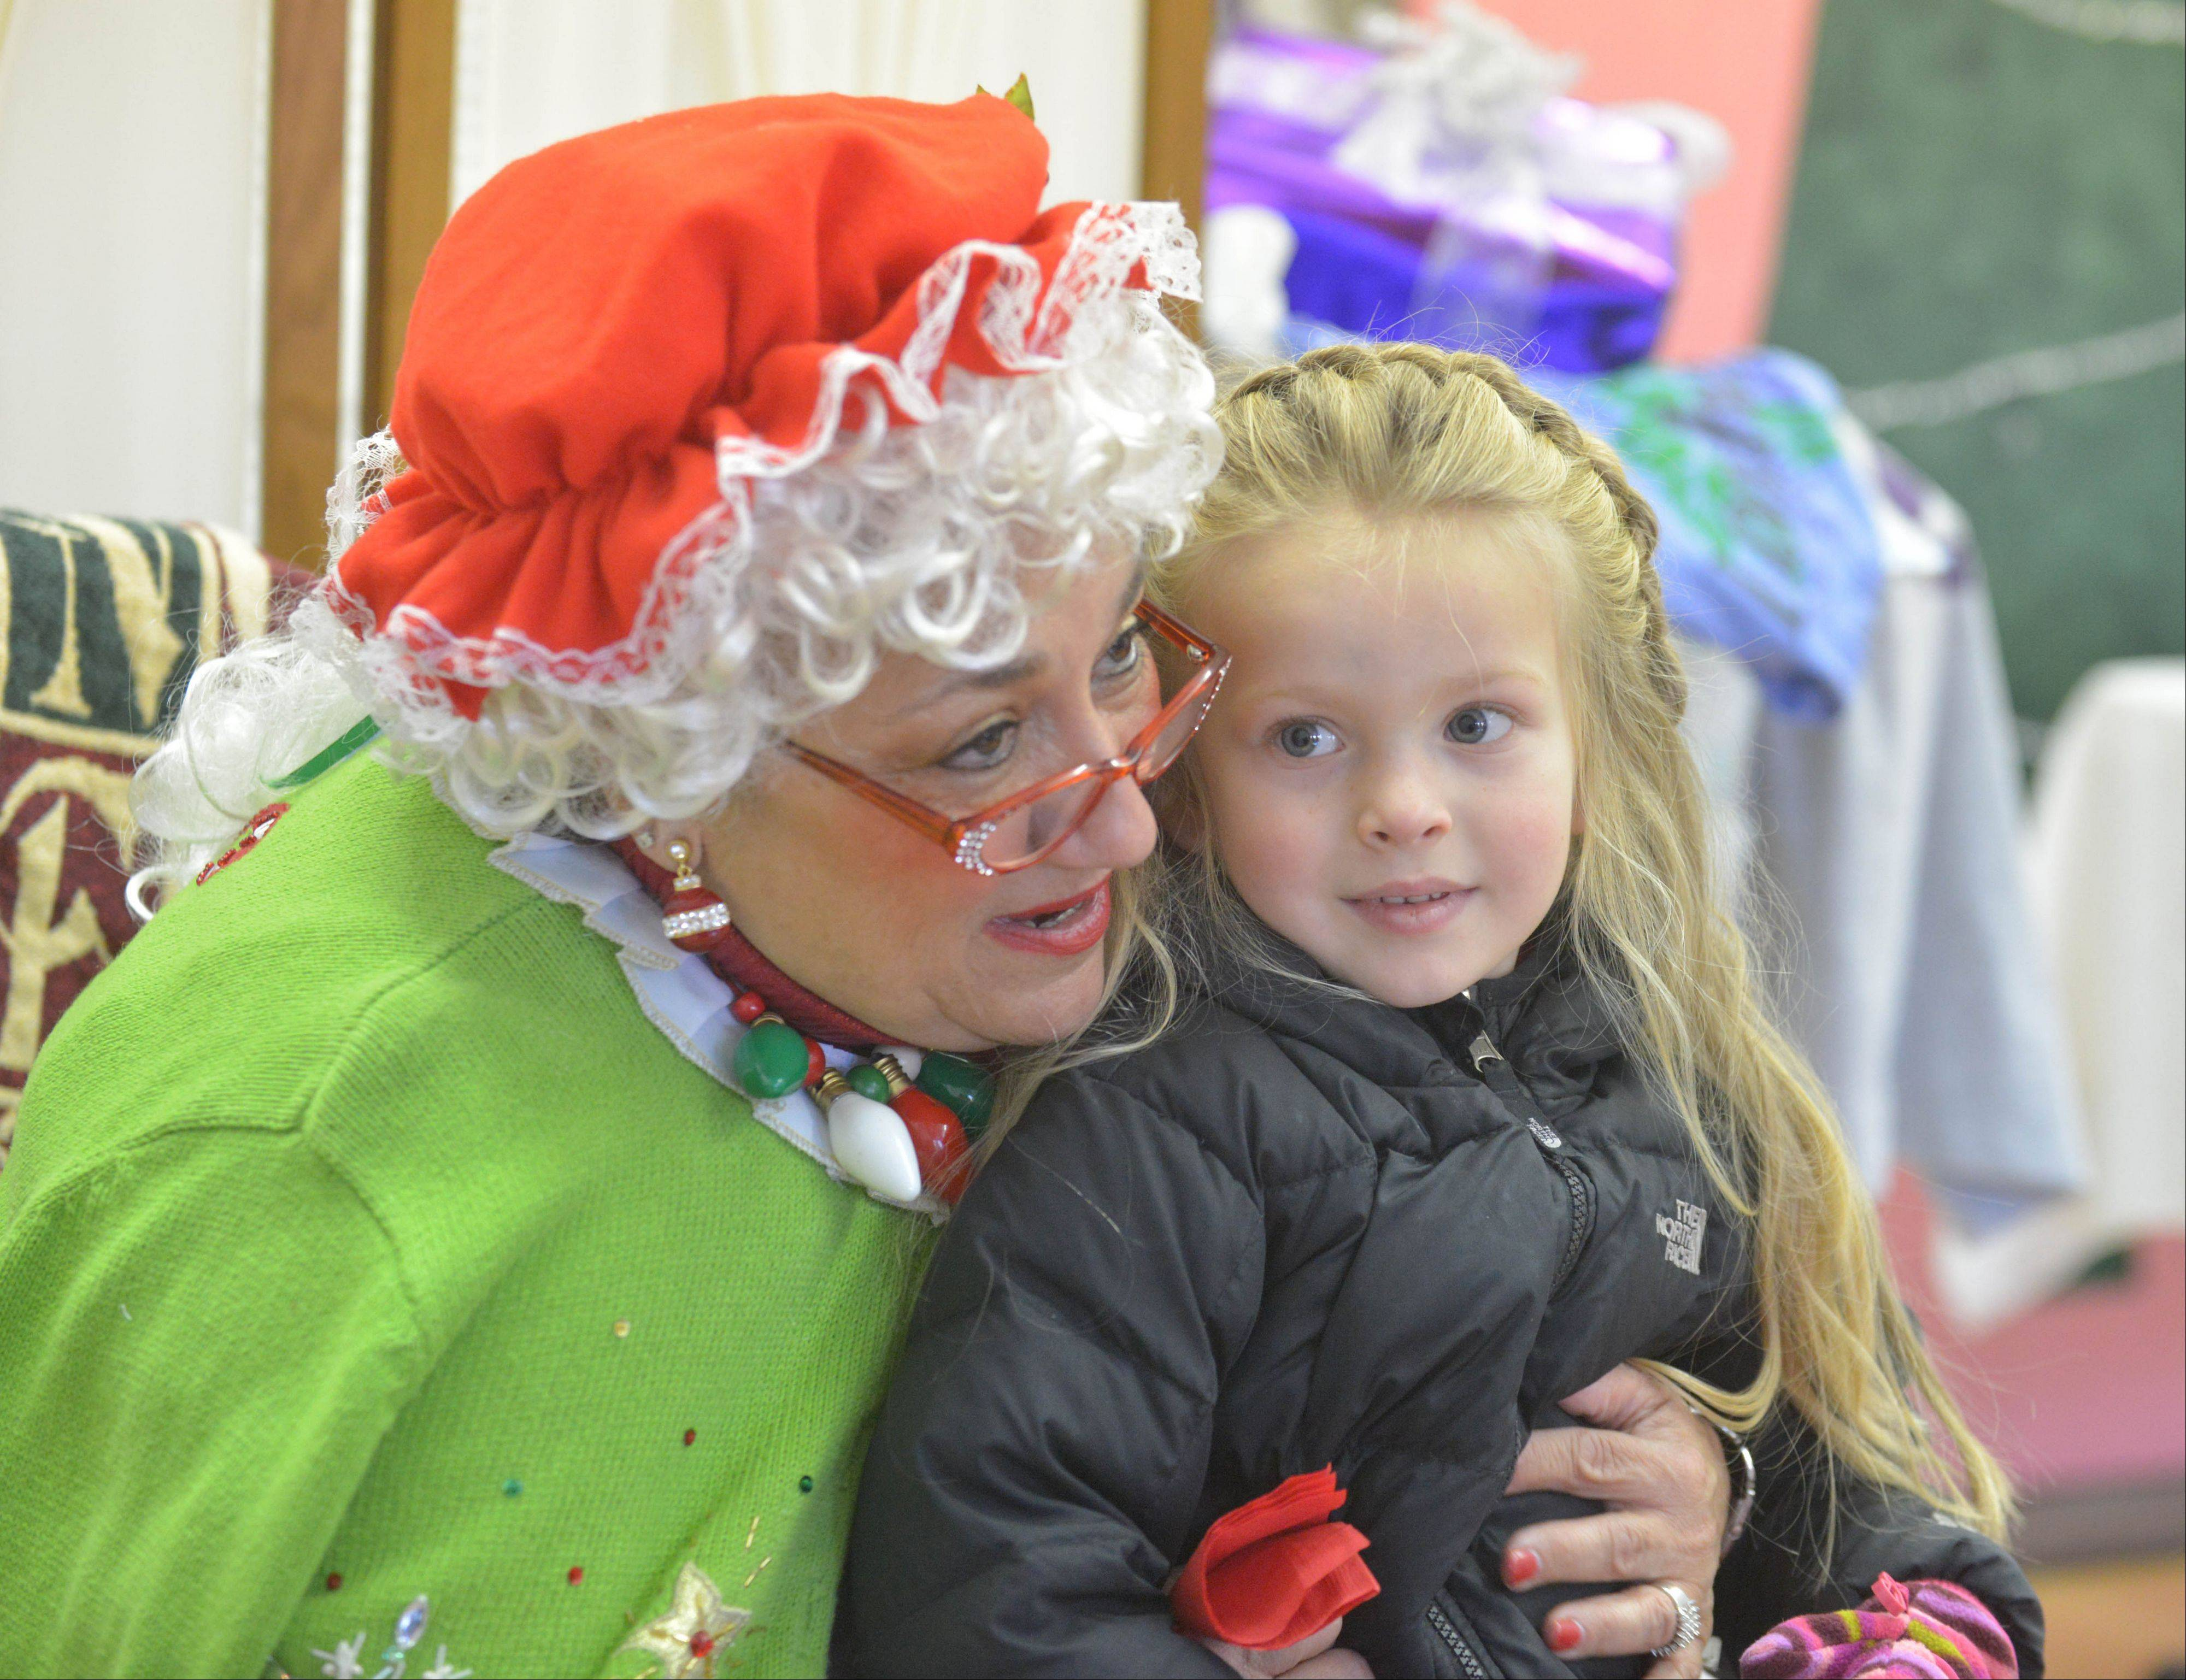 Mrs. Claus chats with Mira Snyder, 4, of Lombard during Lombard's Jinglebell Jubilee on Saturday